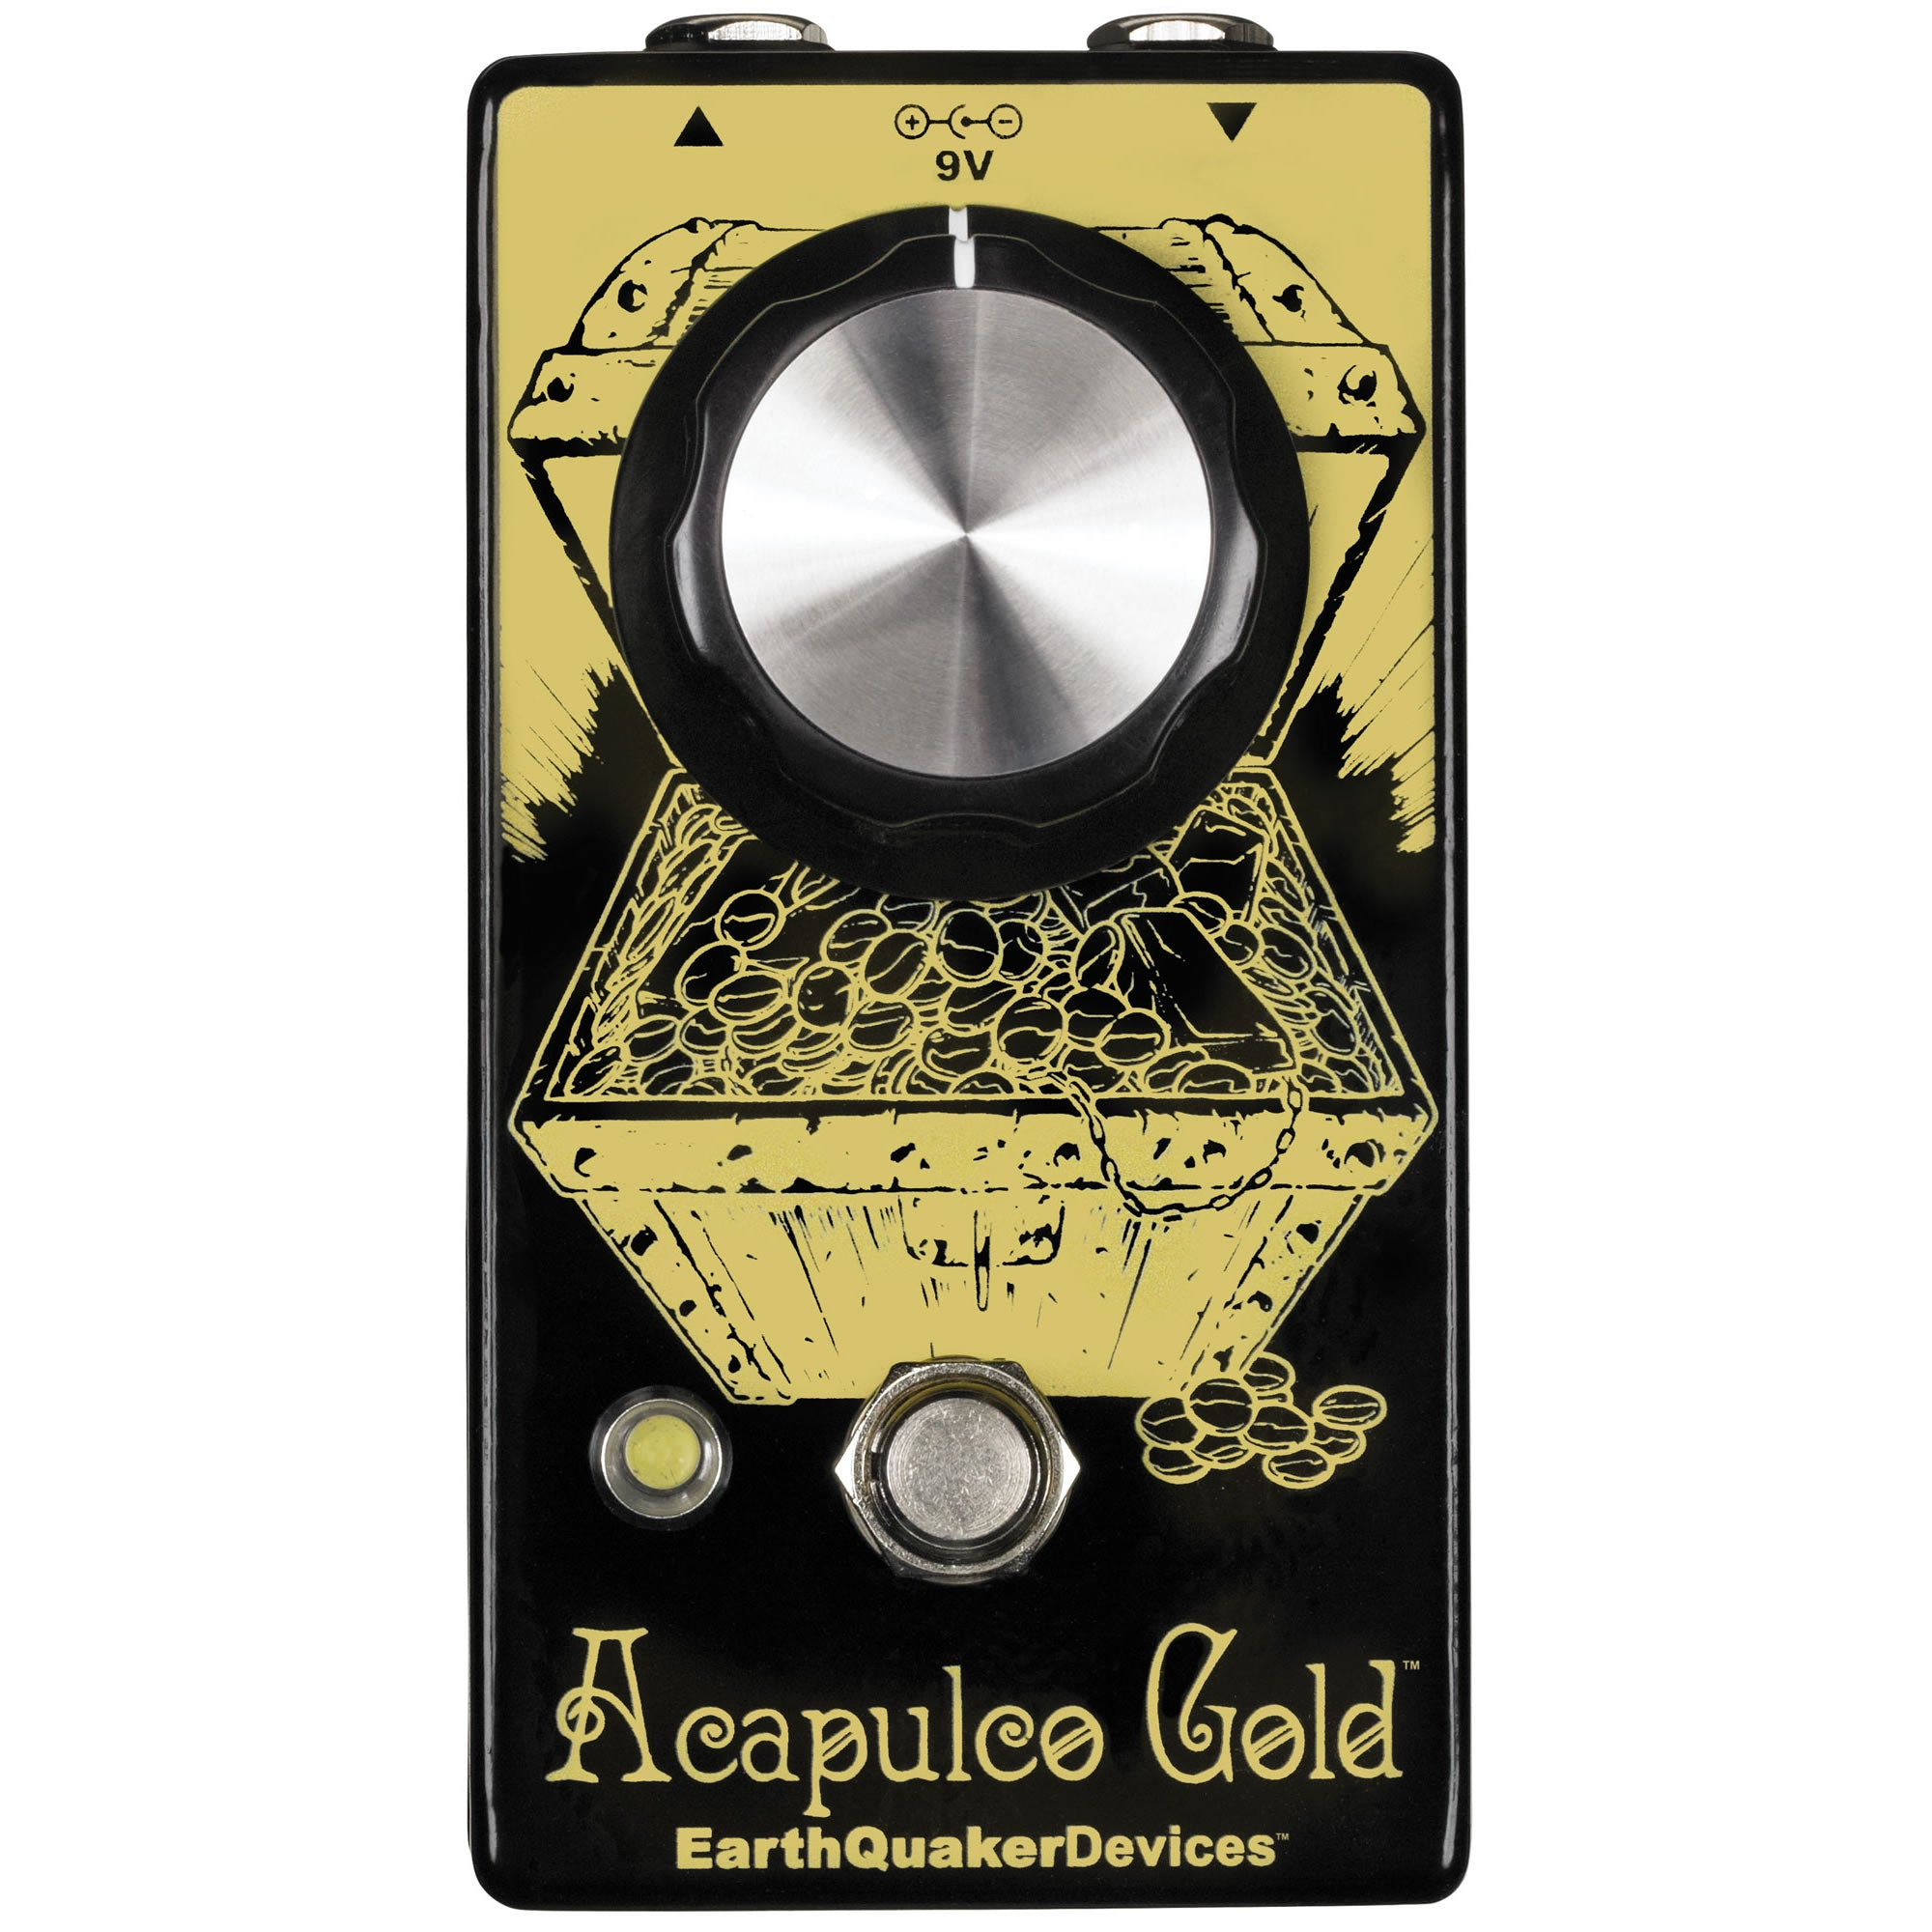 Earthquaker Devices Acapulco Gold Power Amp Distortion - V2